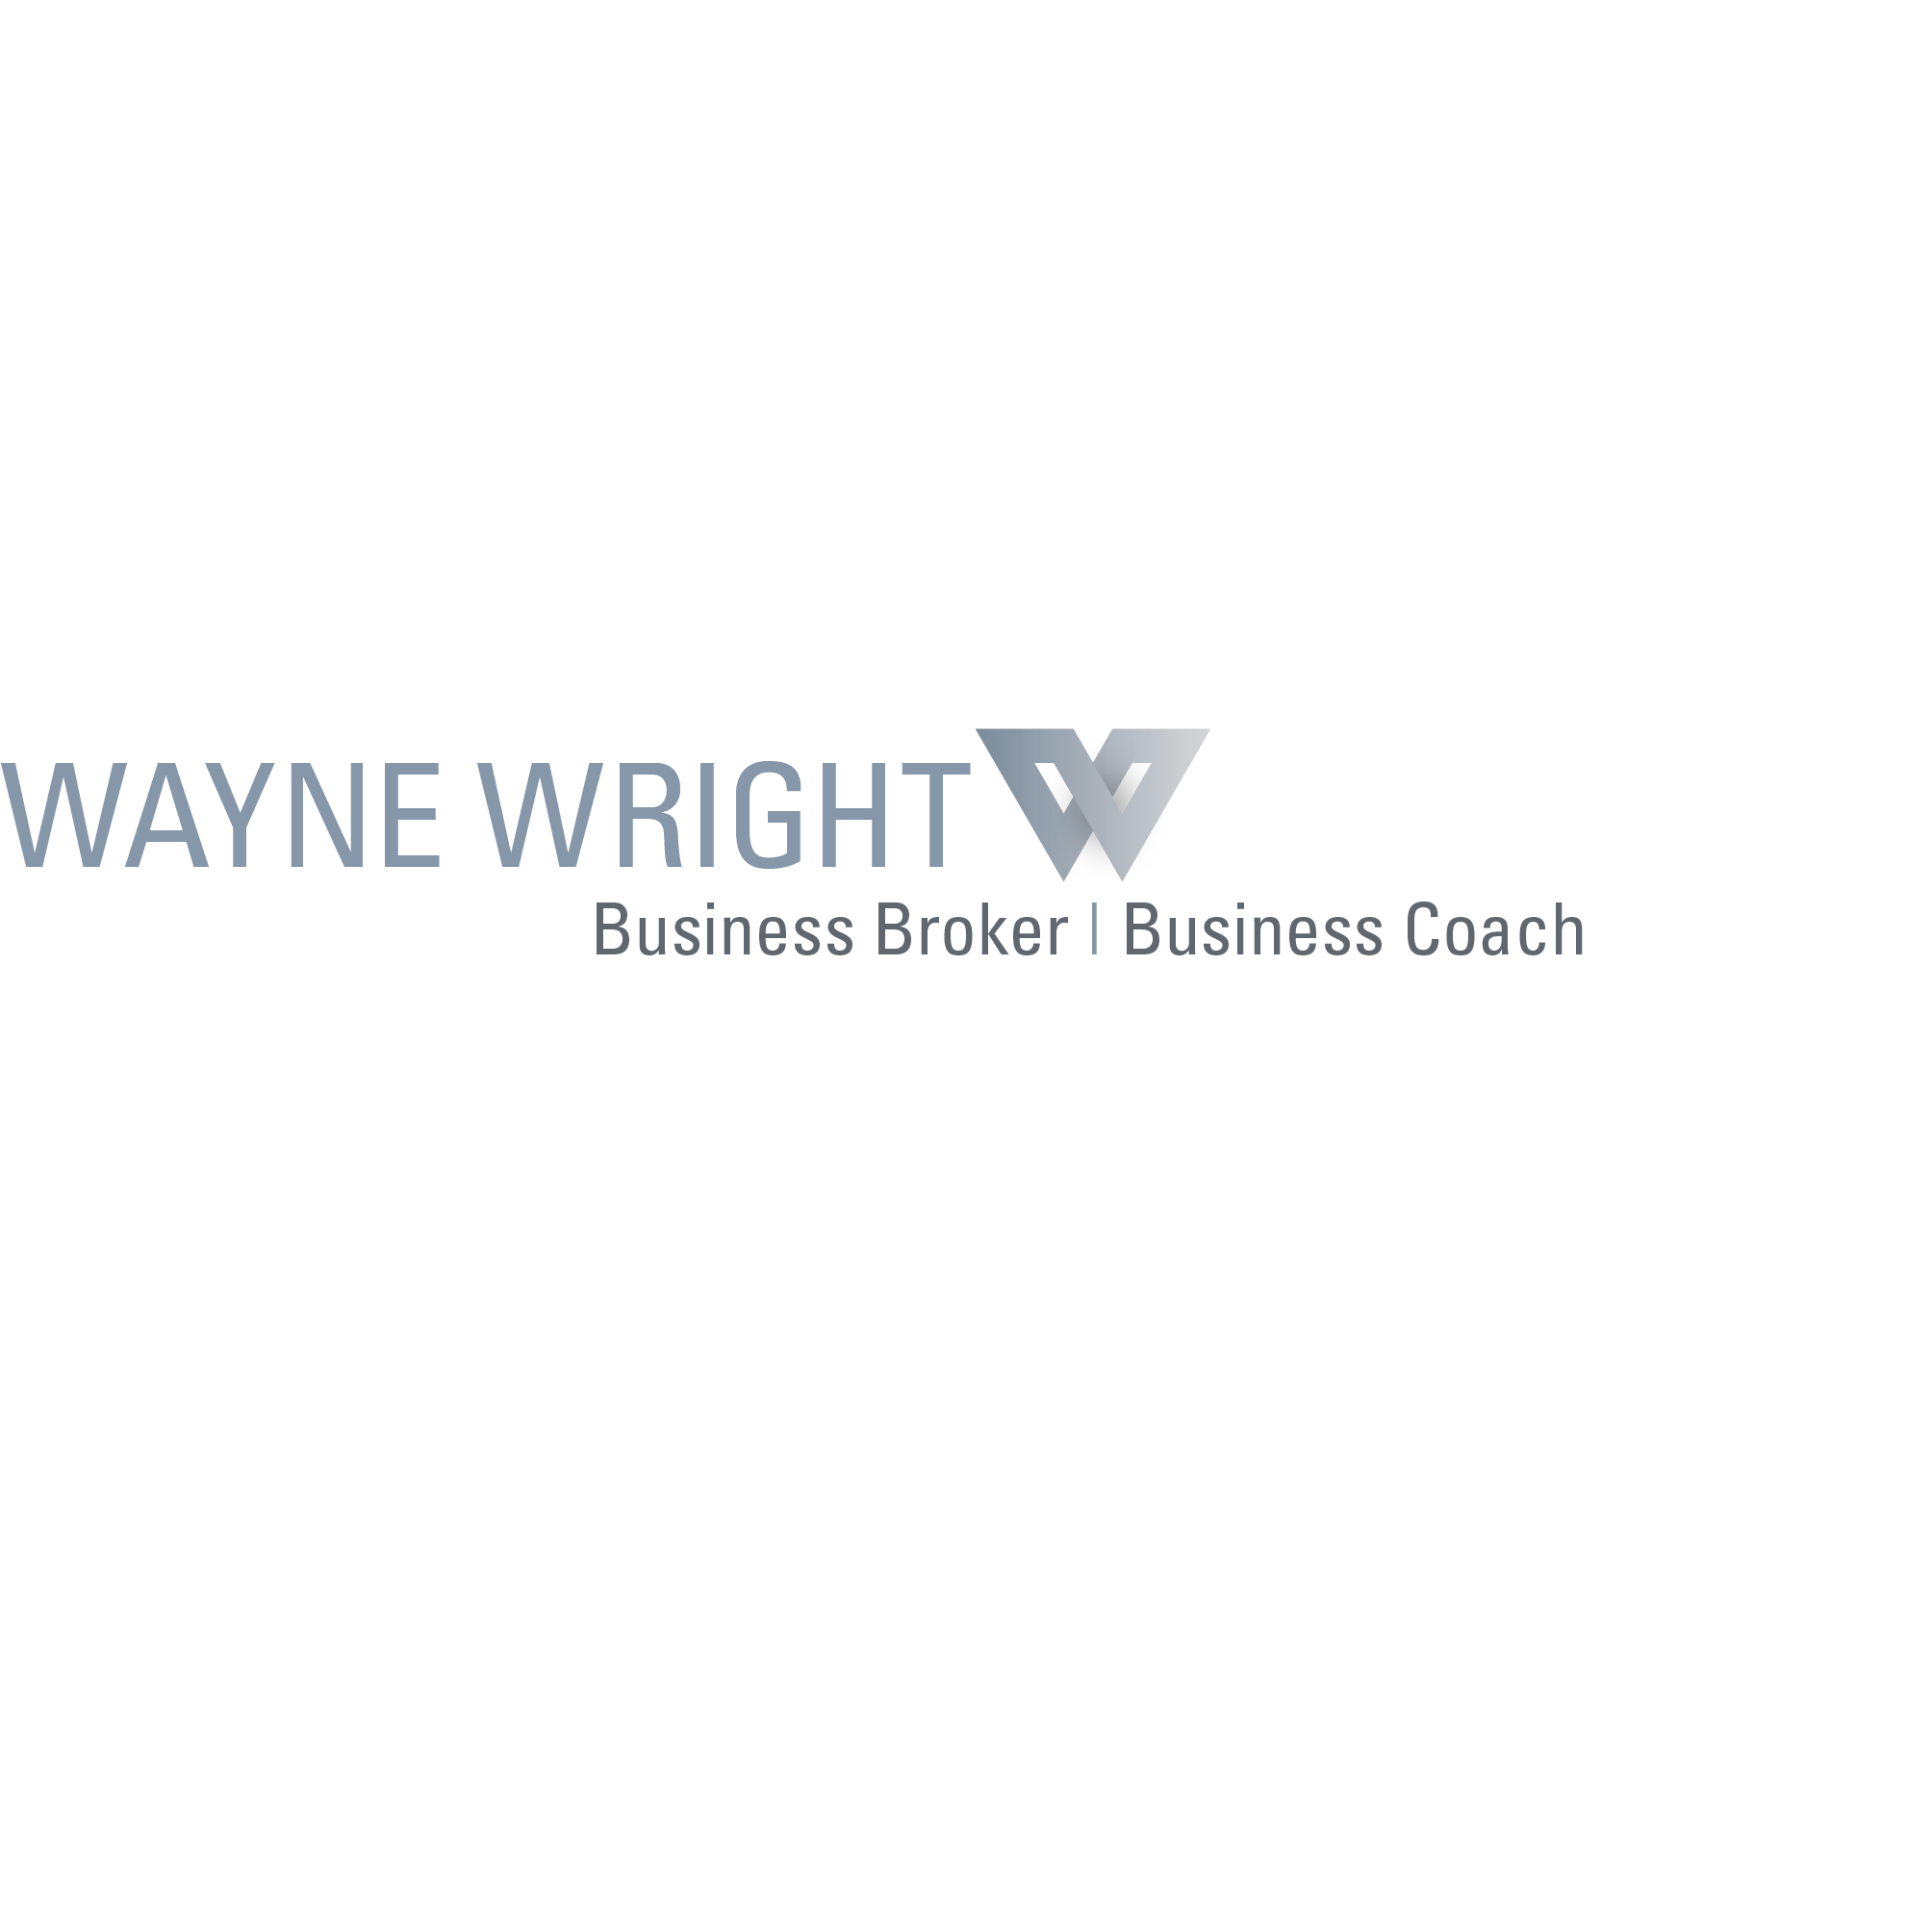 Wayne Wright - Business Broker and Business Coach image 5